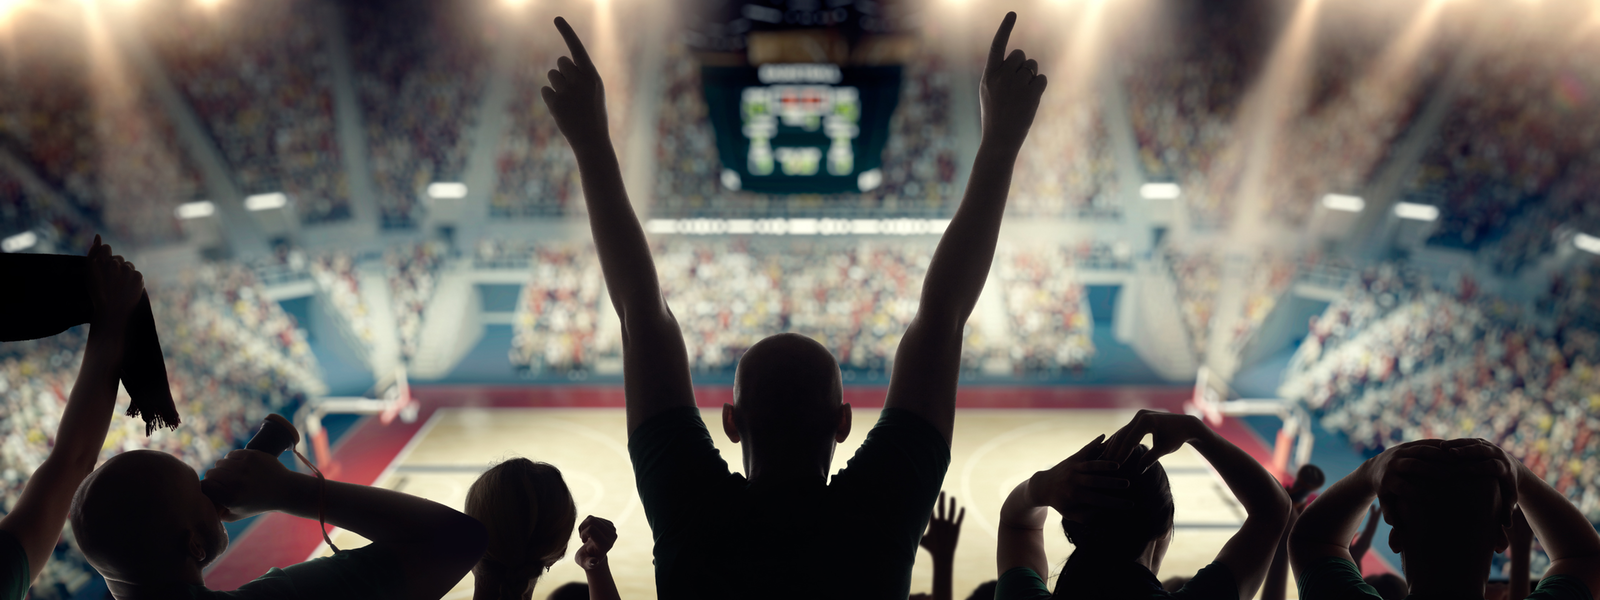 fans watching a basketball game